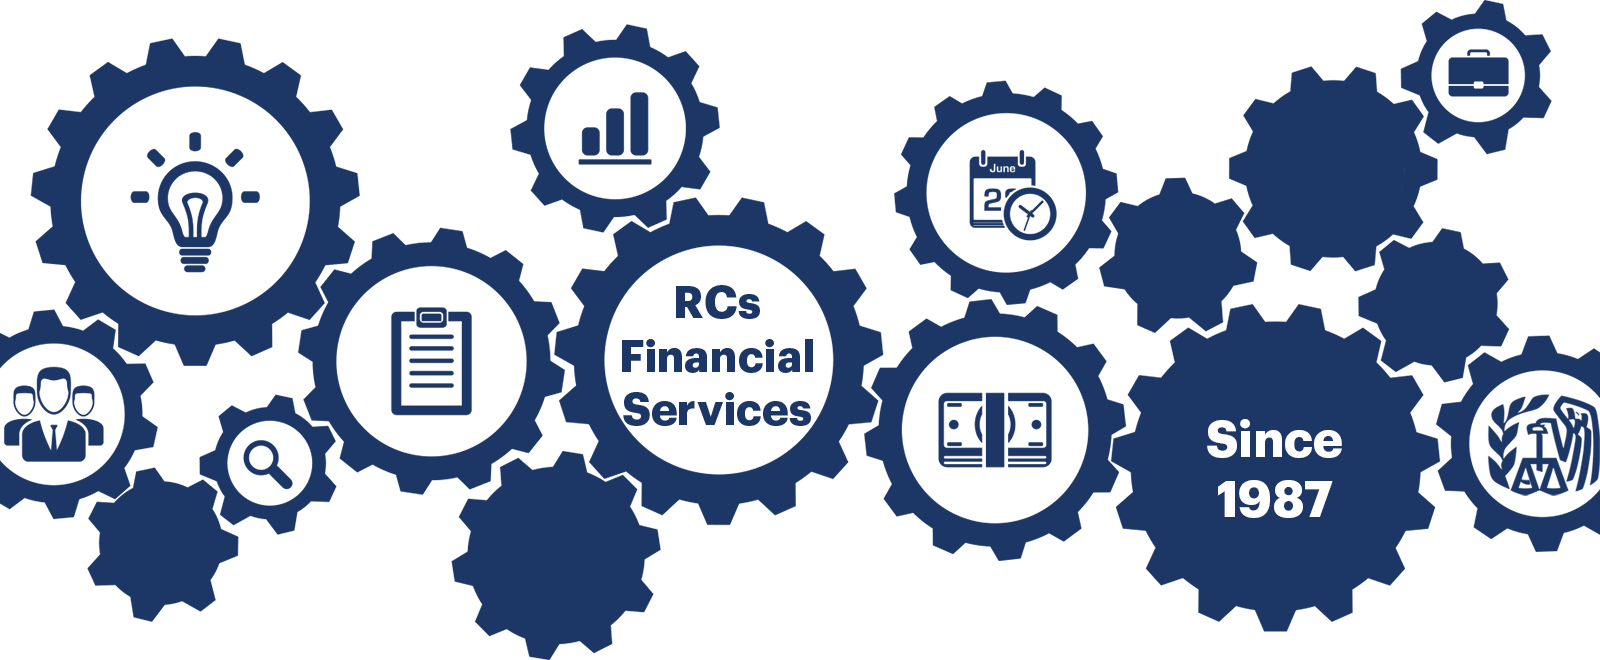 RCs Financial Services - Decatur GA